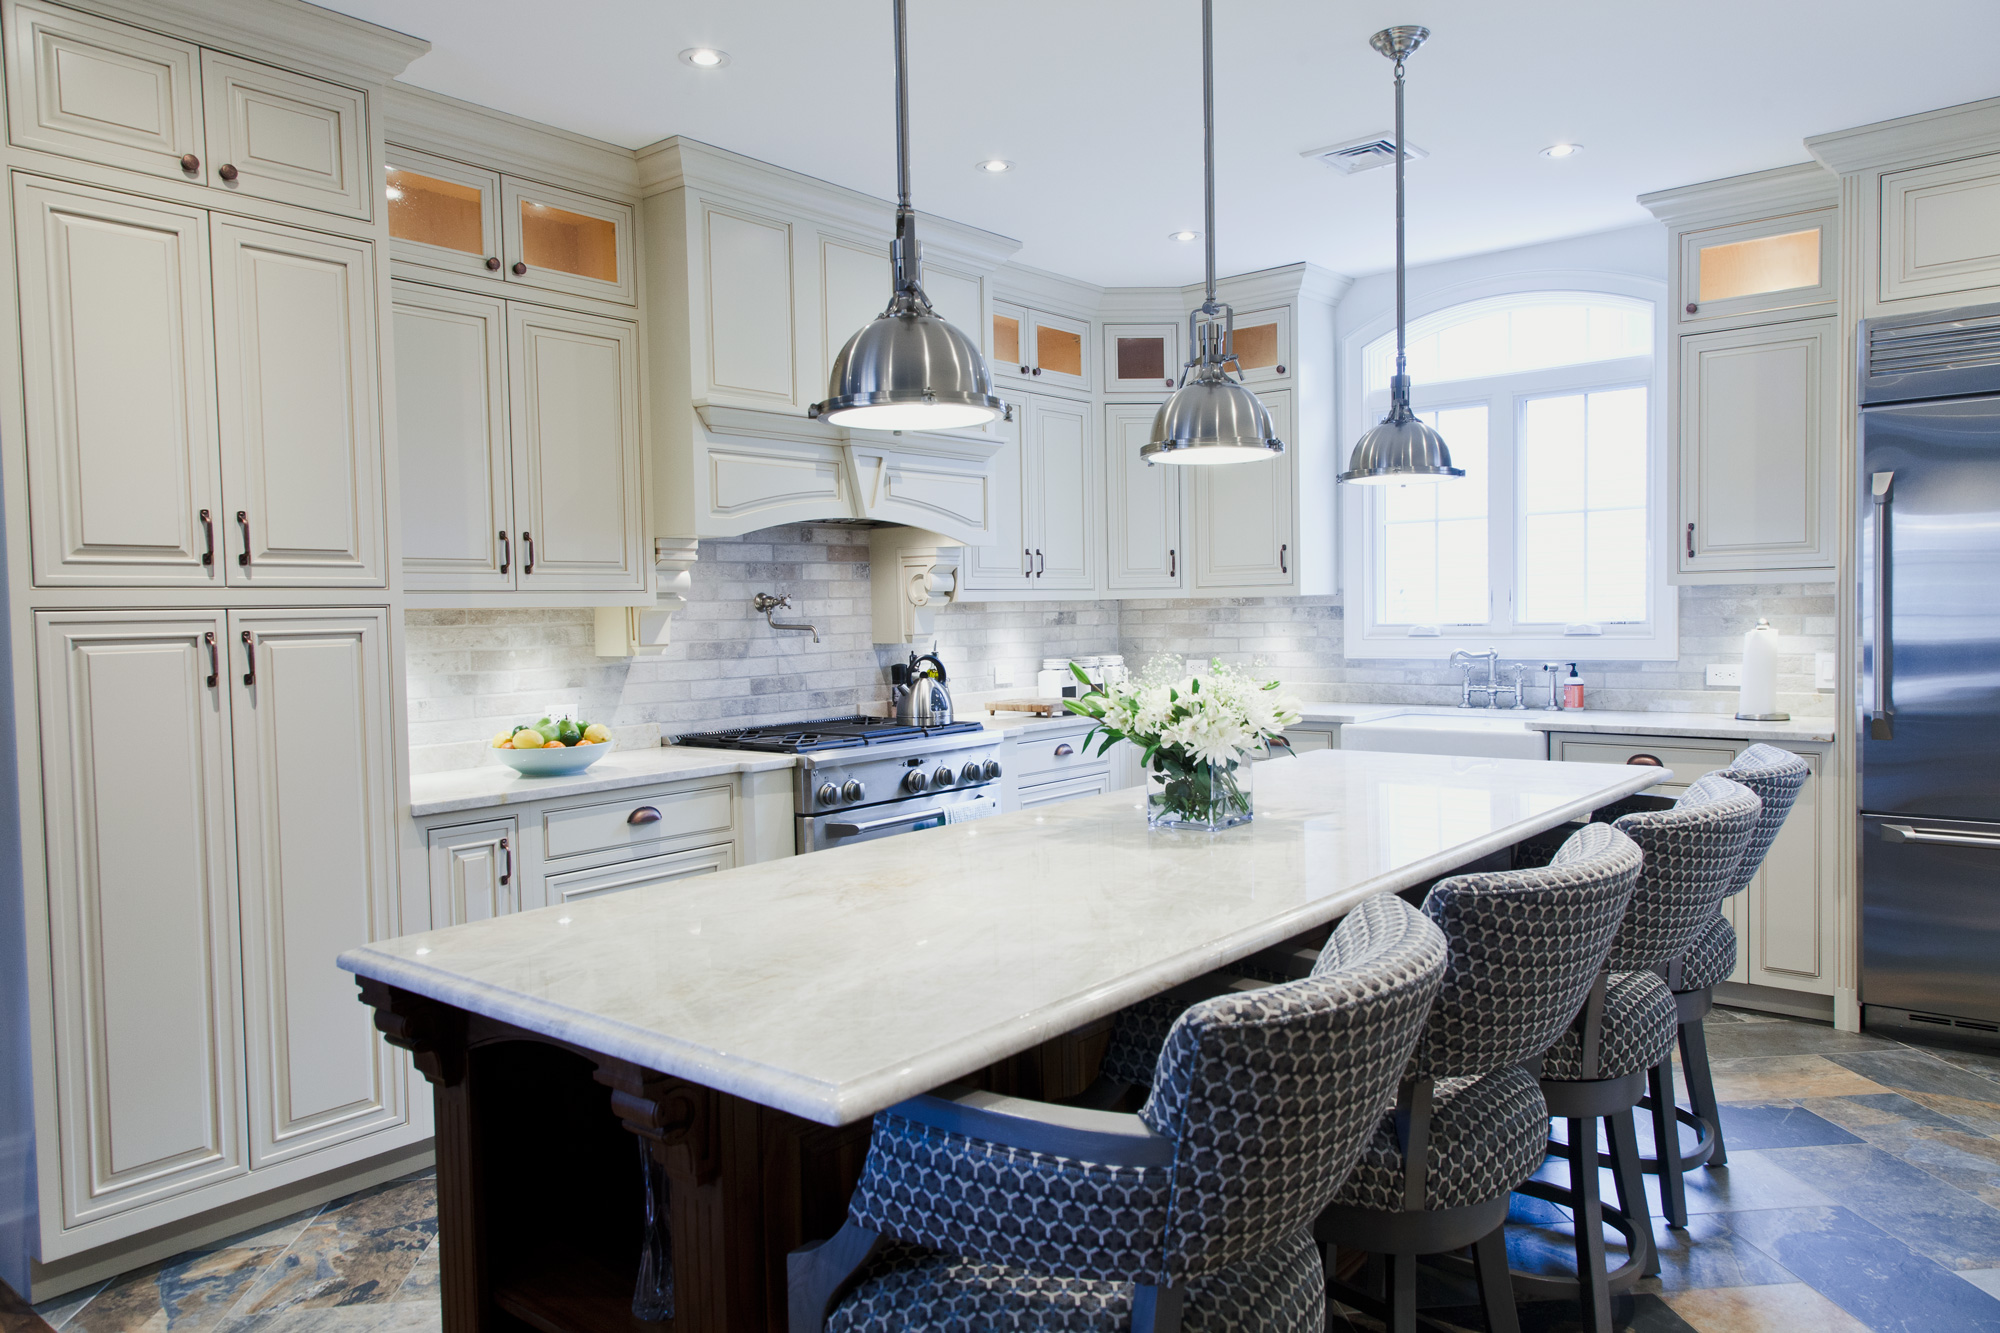 The Kitchen Loft | Custom kitchens designed in your home